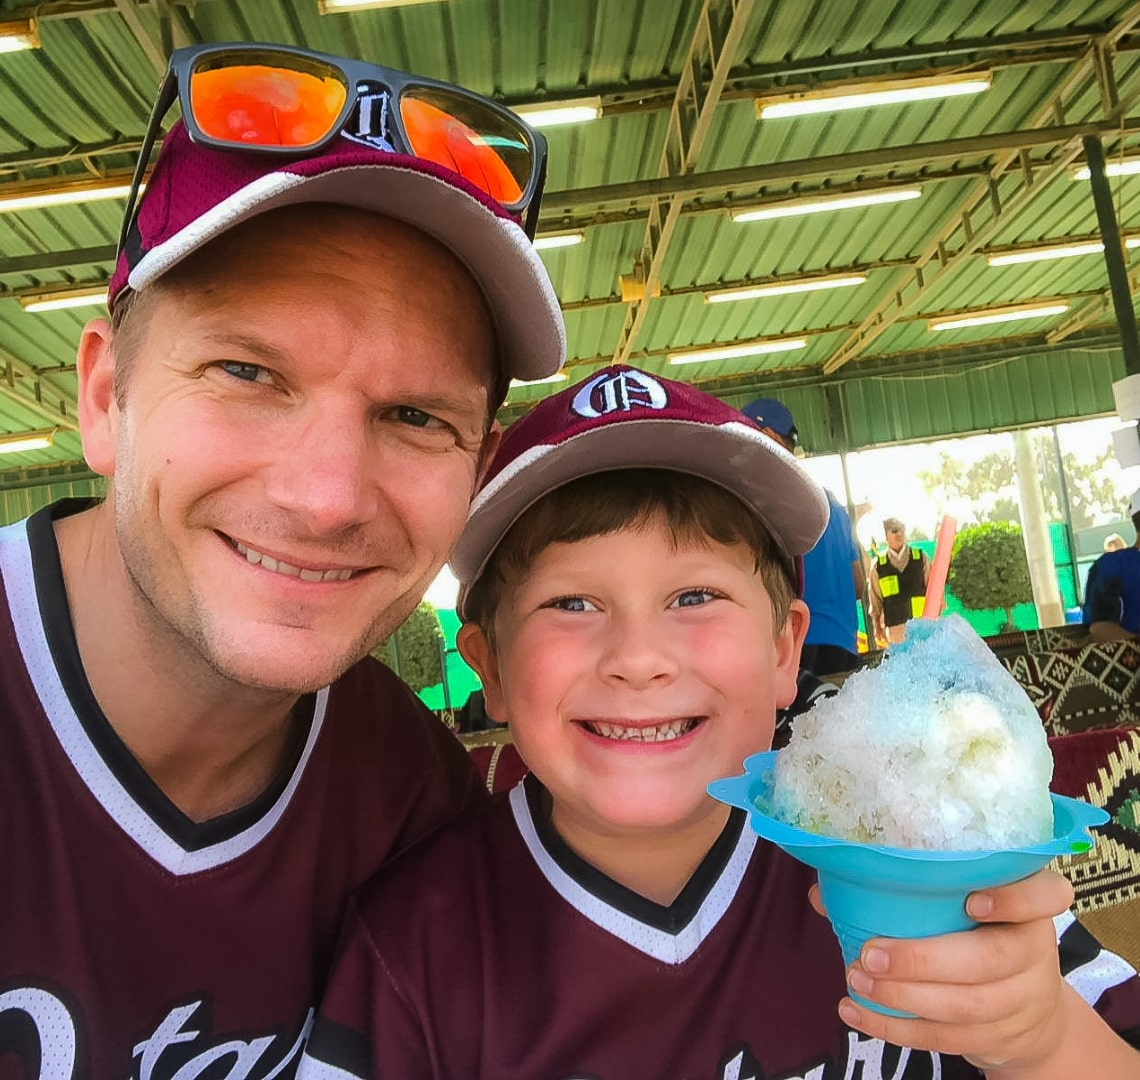 Baseball Mom - Mr Wanderlust and Thing 1 with an enormous sno cone beaming from ear to ear!